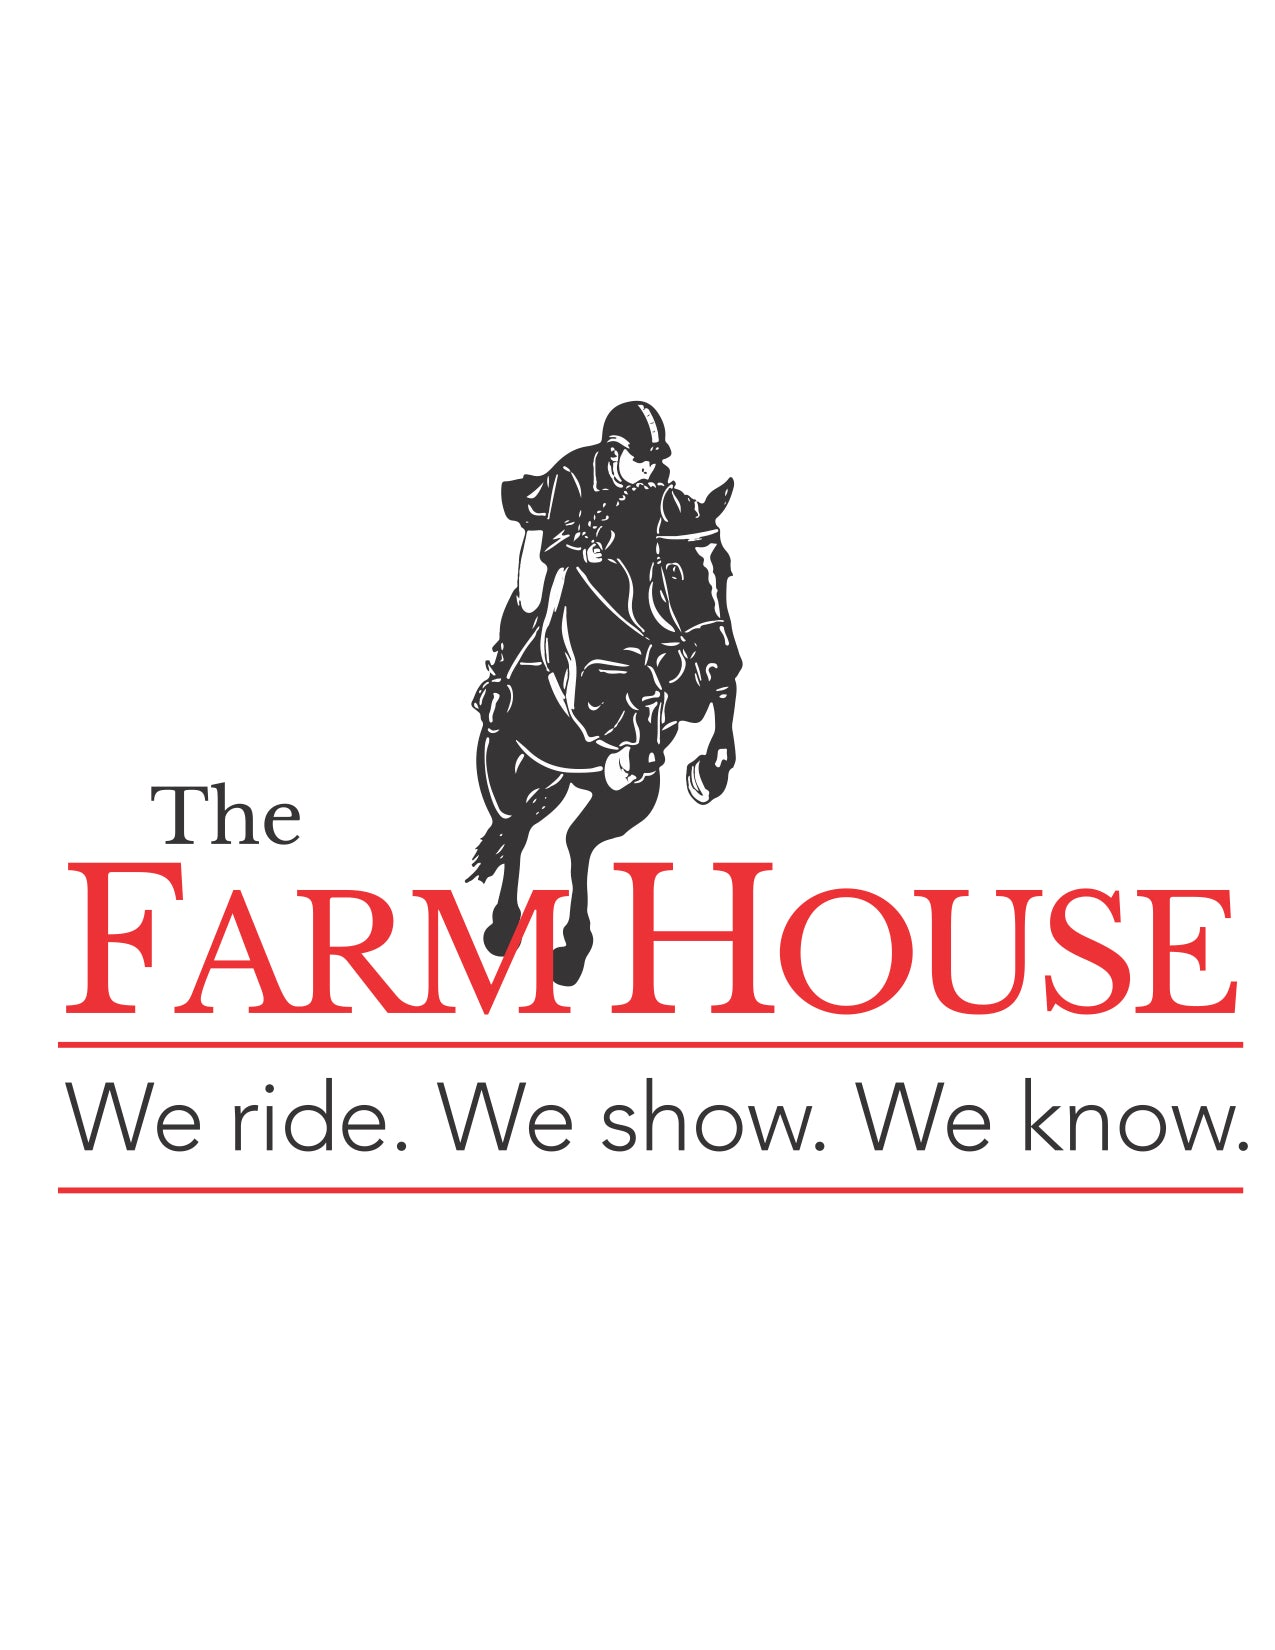 The FarmHouse Tack Stocks Pony Pantry!